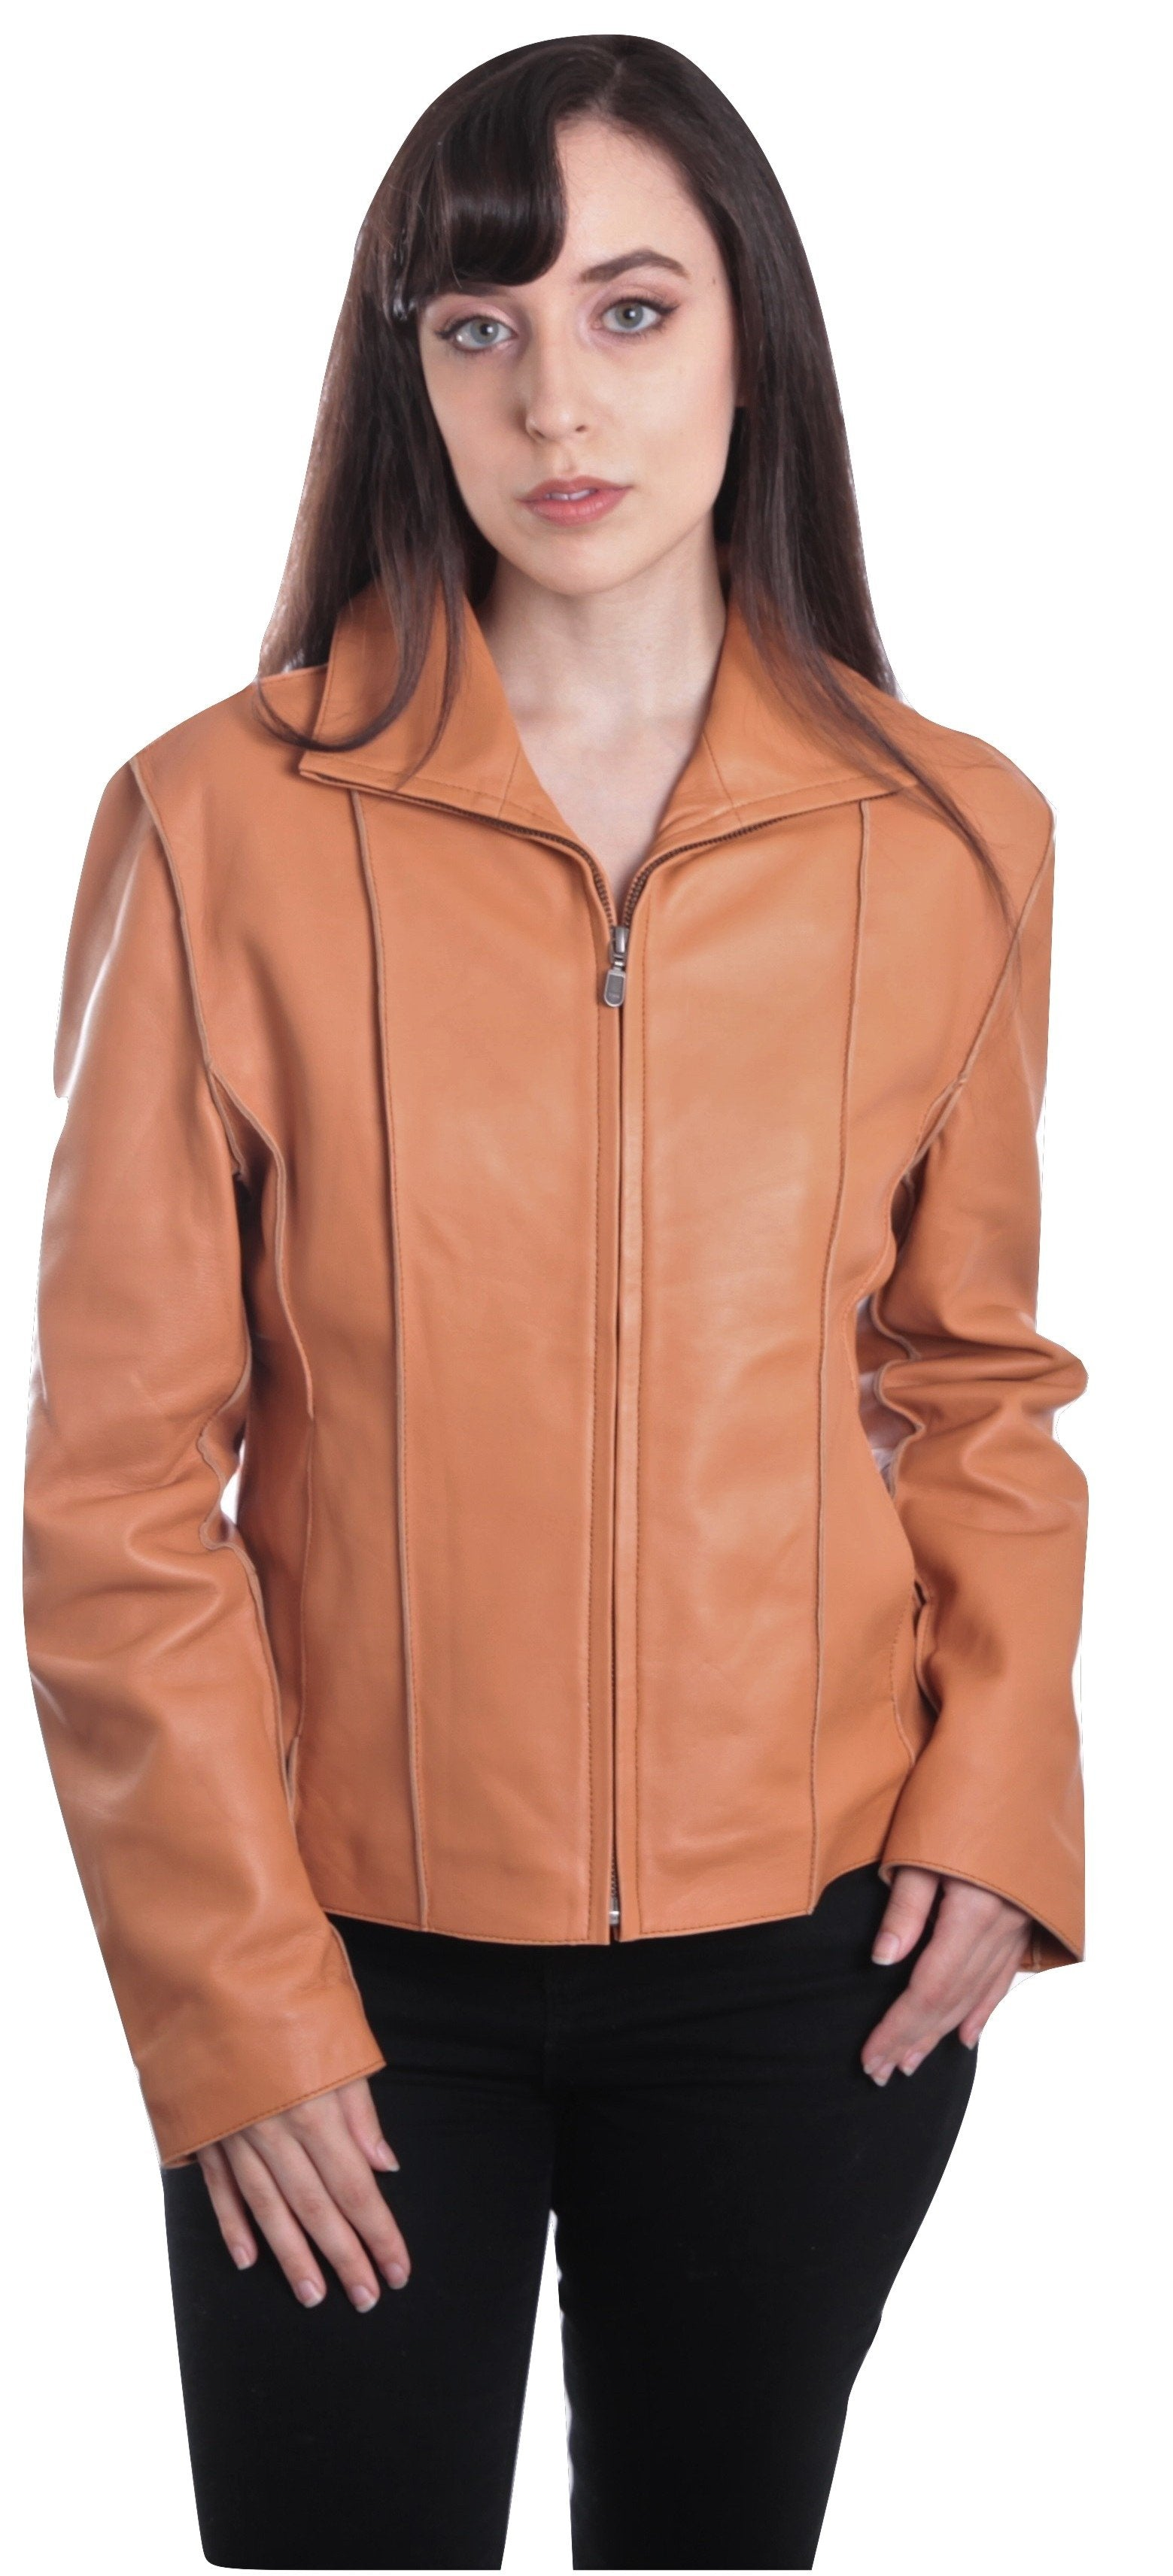 Aaliya Womens Sheepskin Leather Jacket, Tan - Fadcloset